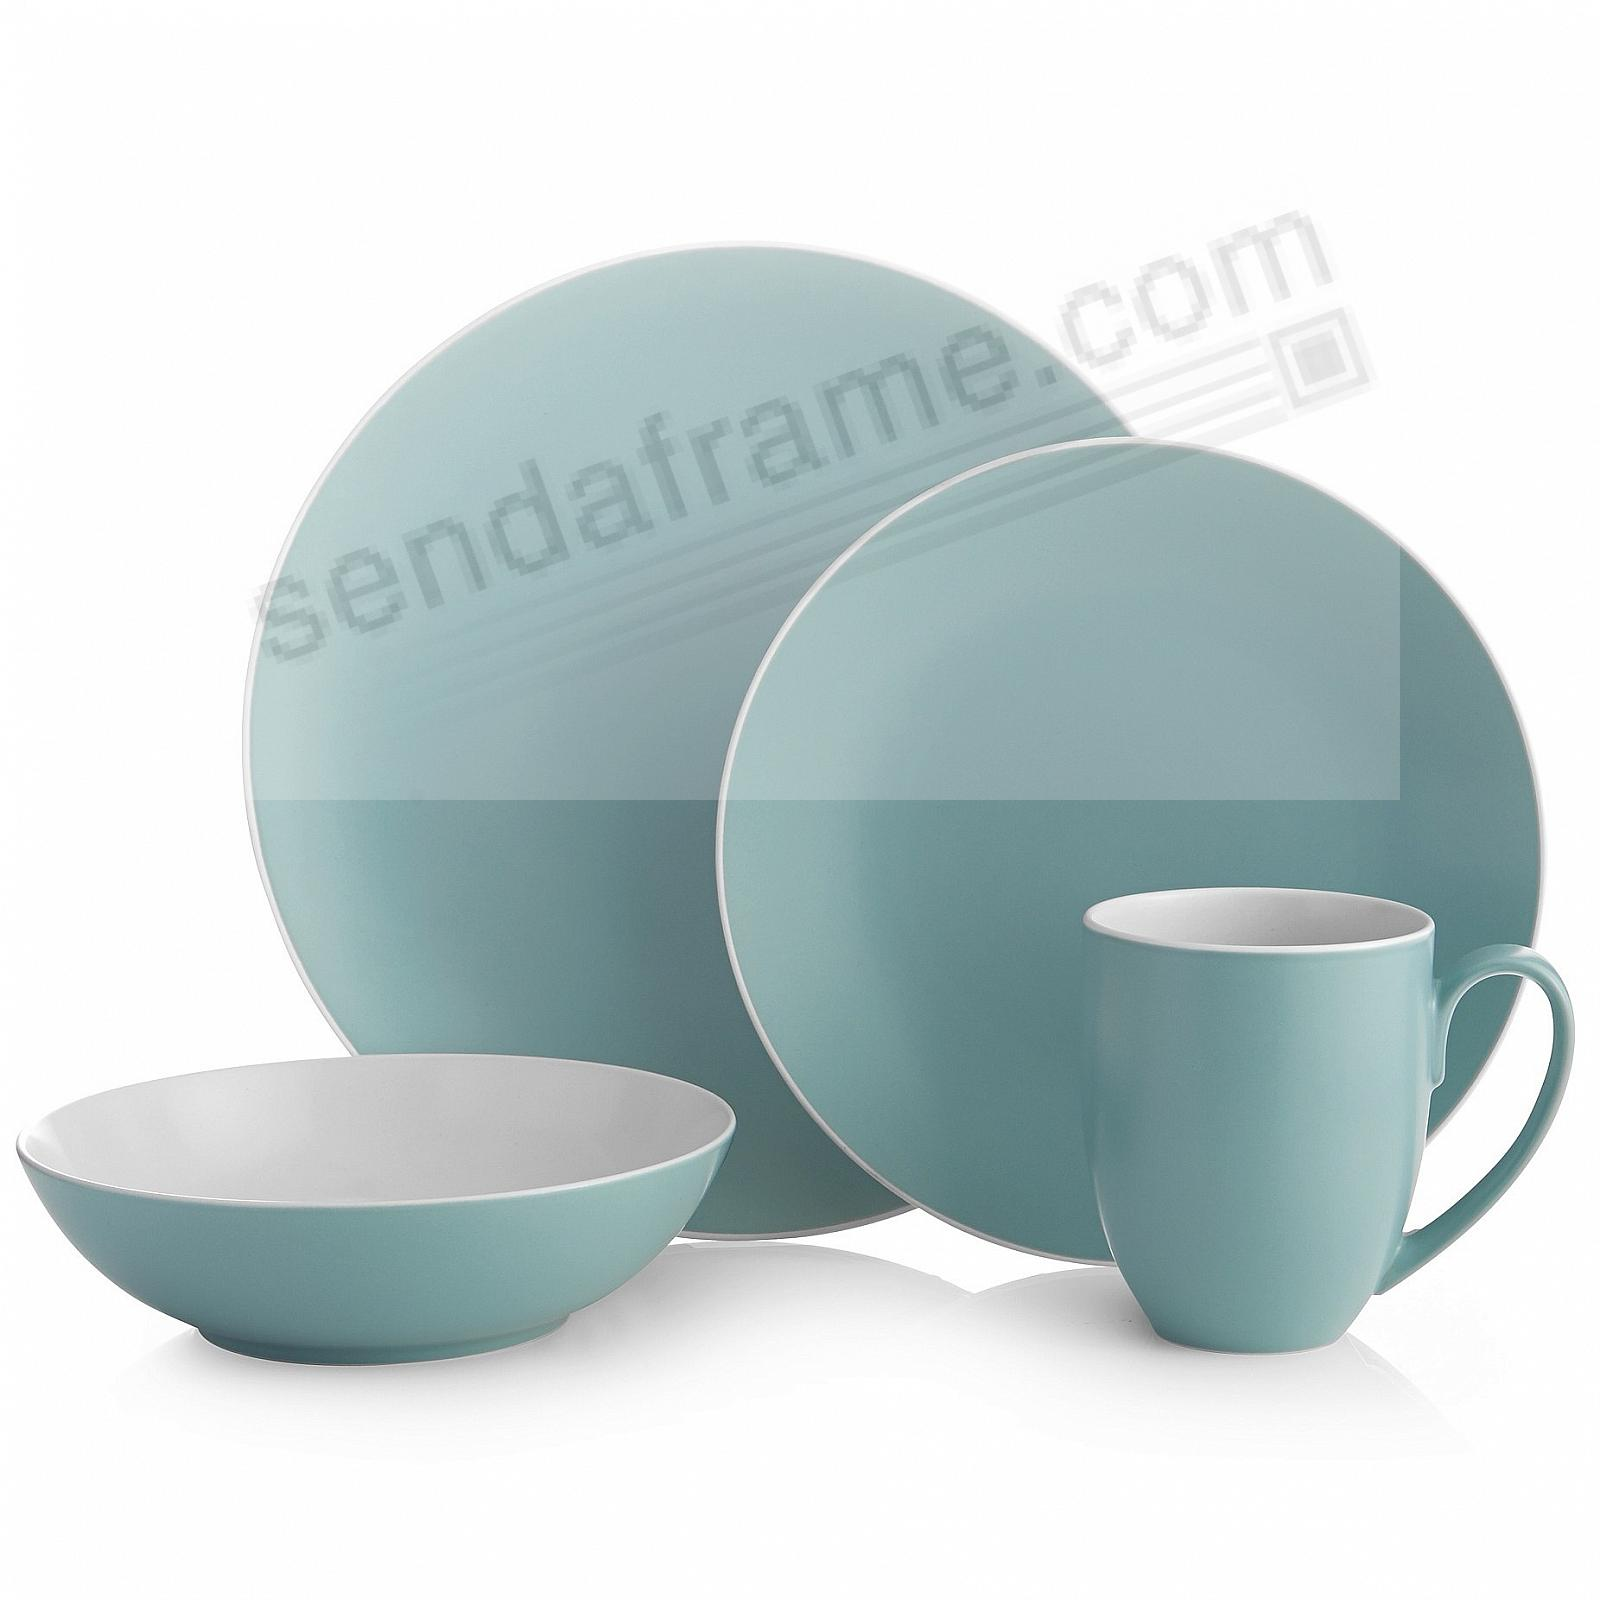 POP 4PC Place Setting OCEAN-BLUE by Nambe®